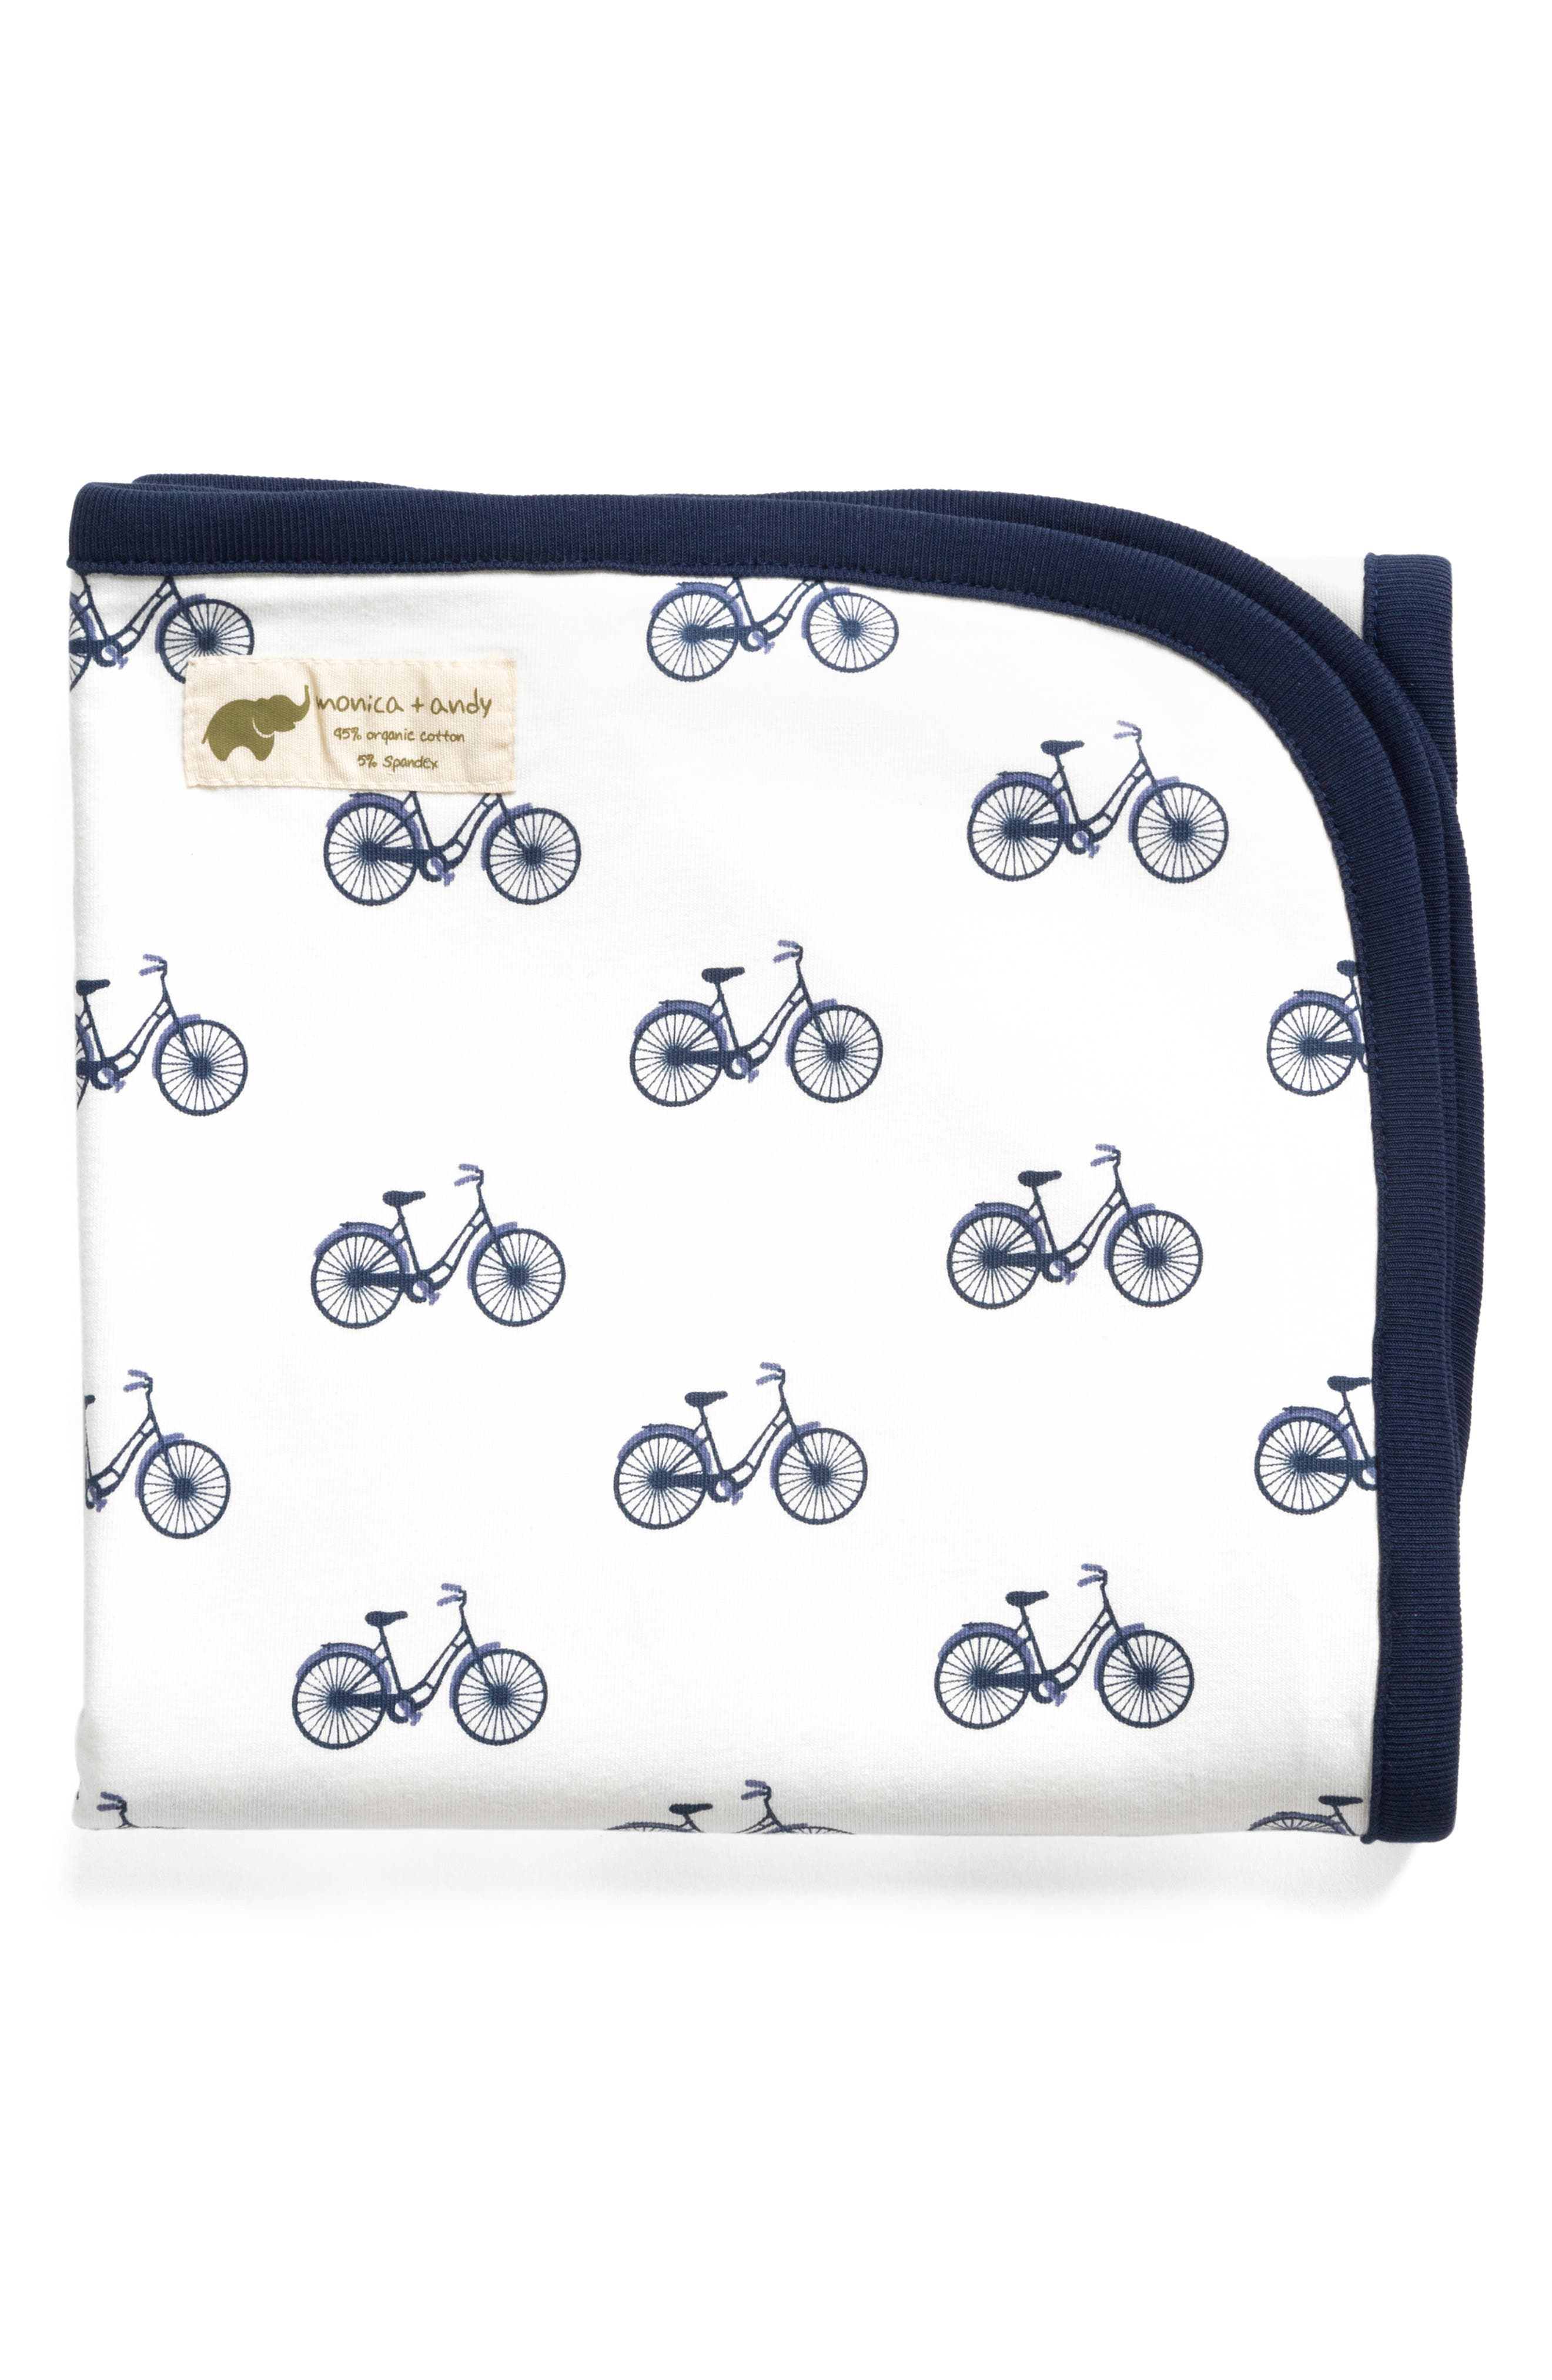 My First Bike Coming Home Blanket,                             Main thumbnail 1, color,                             MY FIRST BIKE